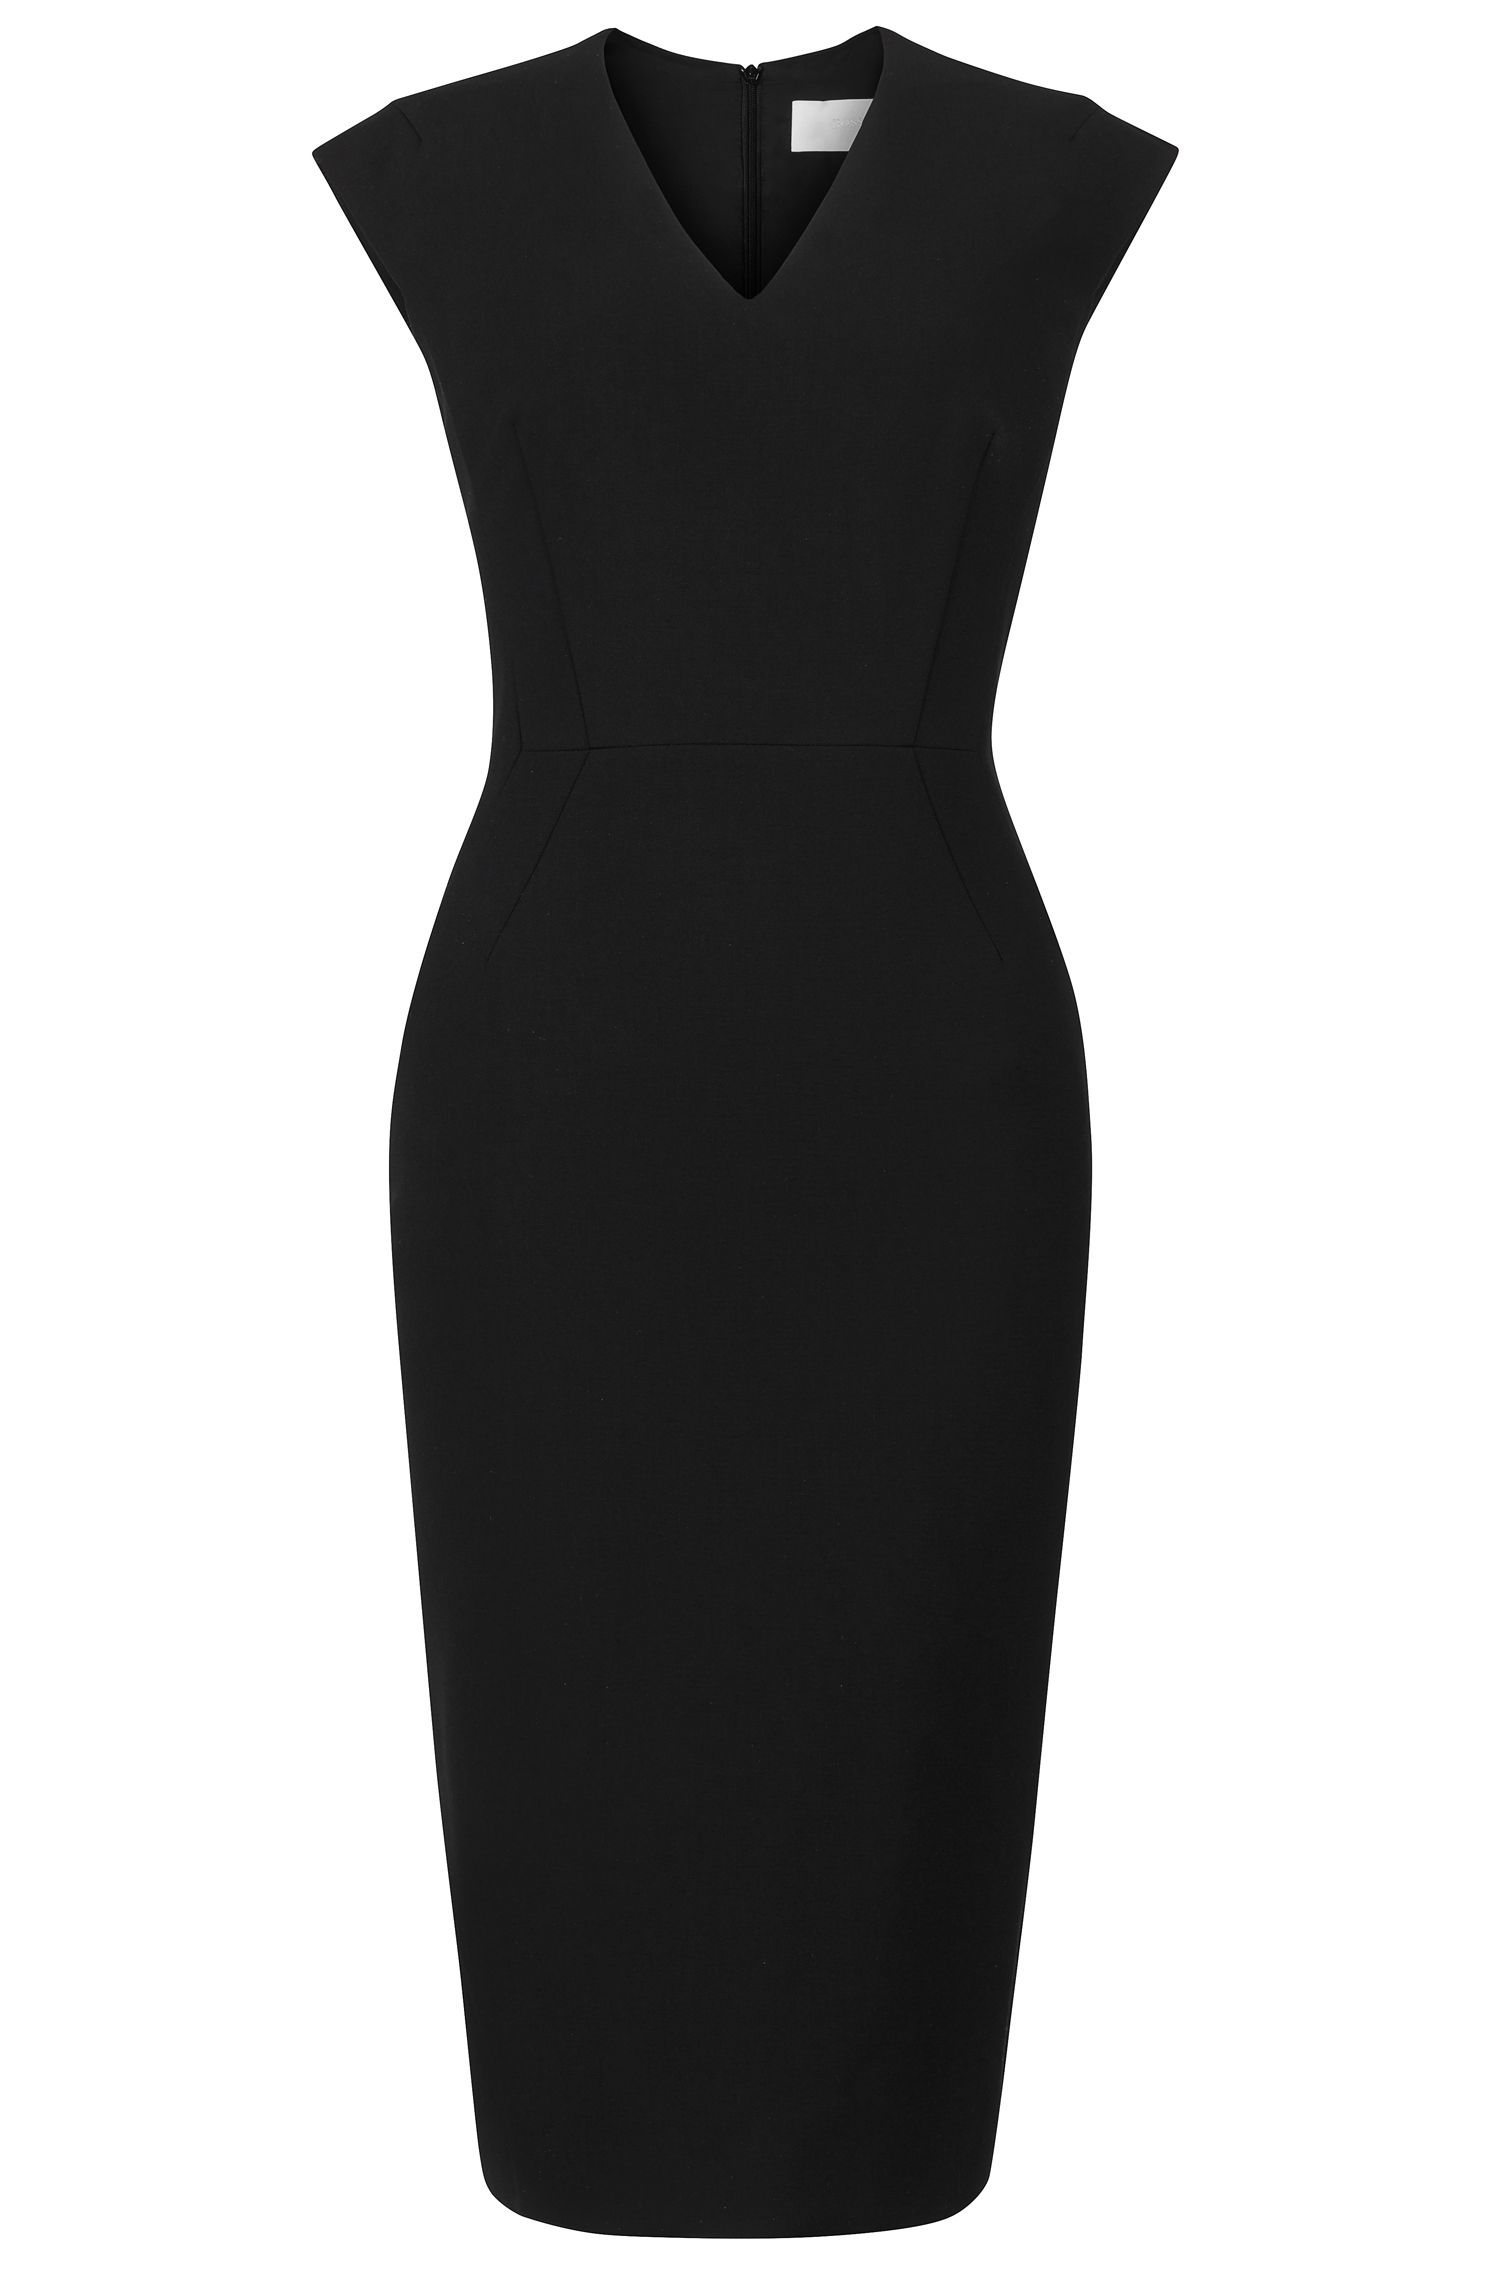 'Dalana' | Stretch Cotton Blend Sheath Dress